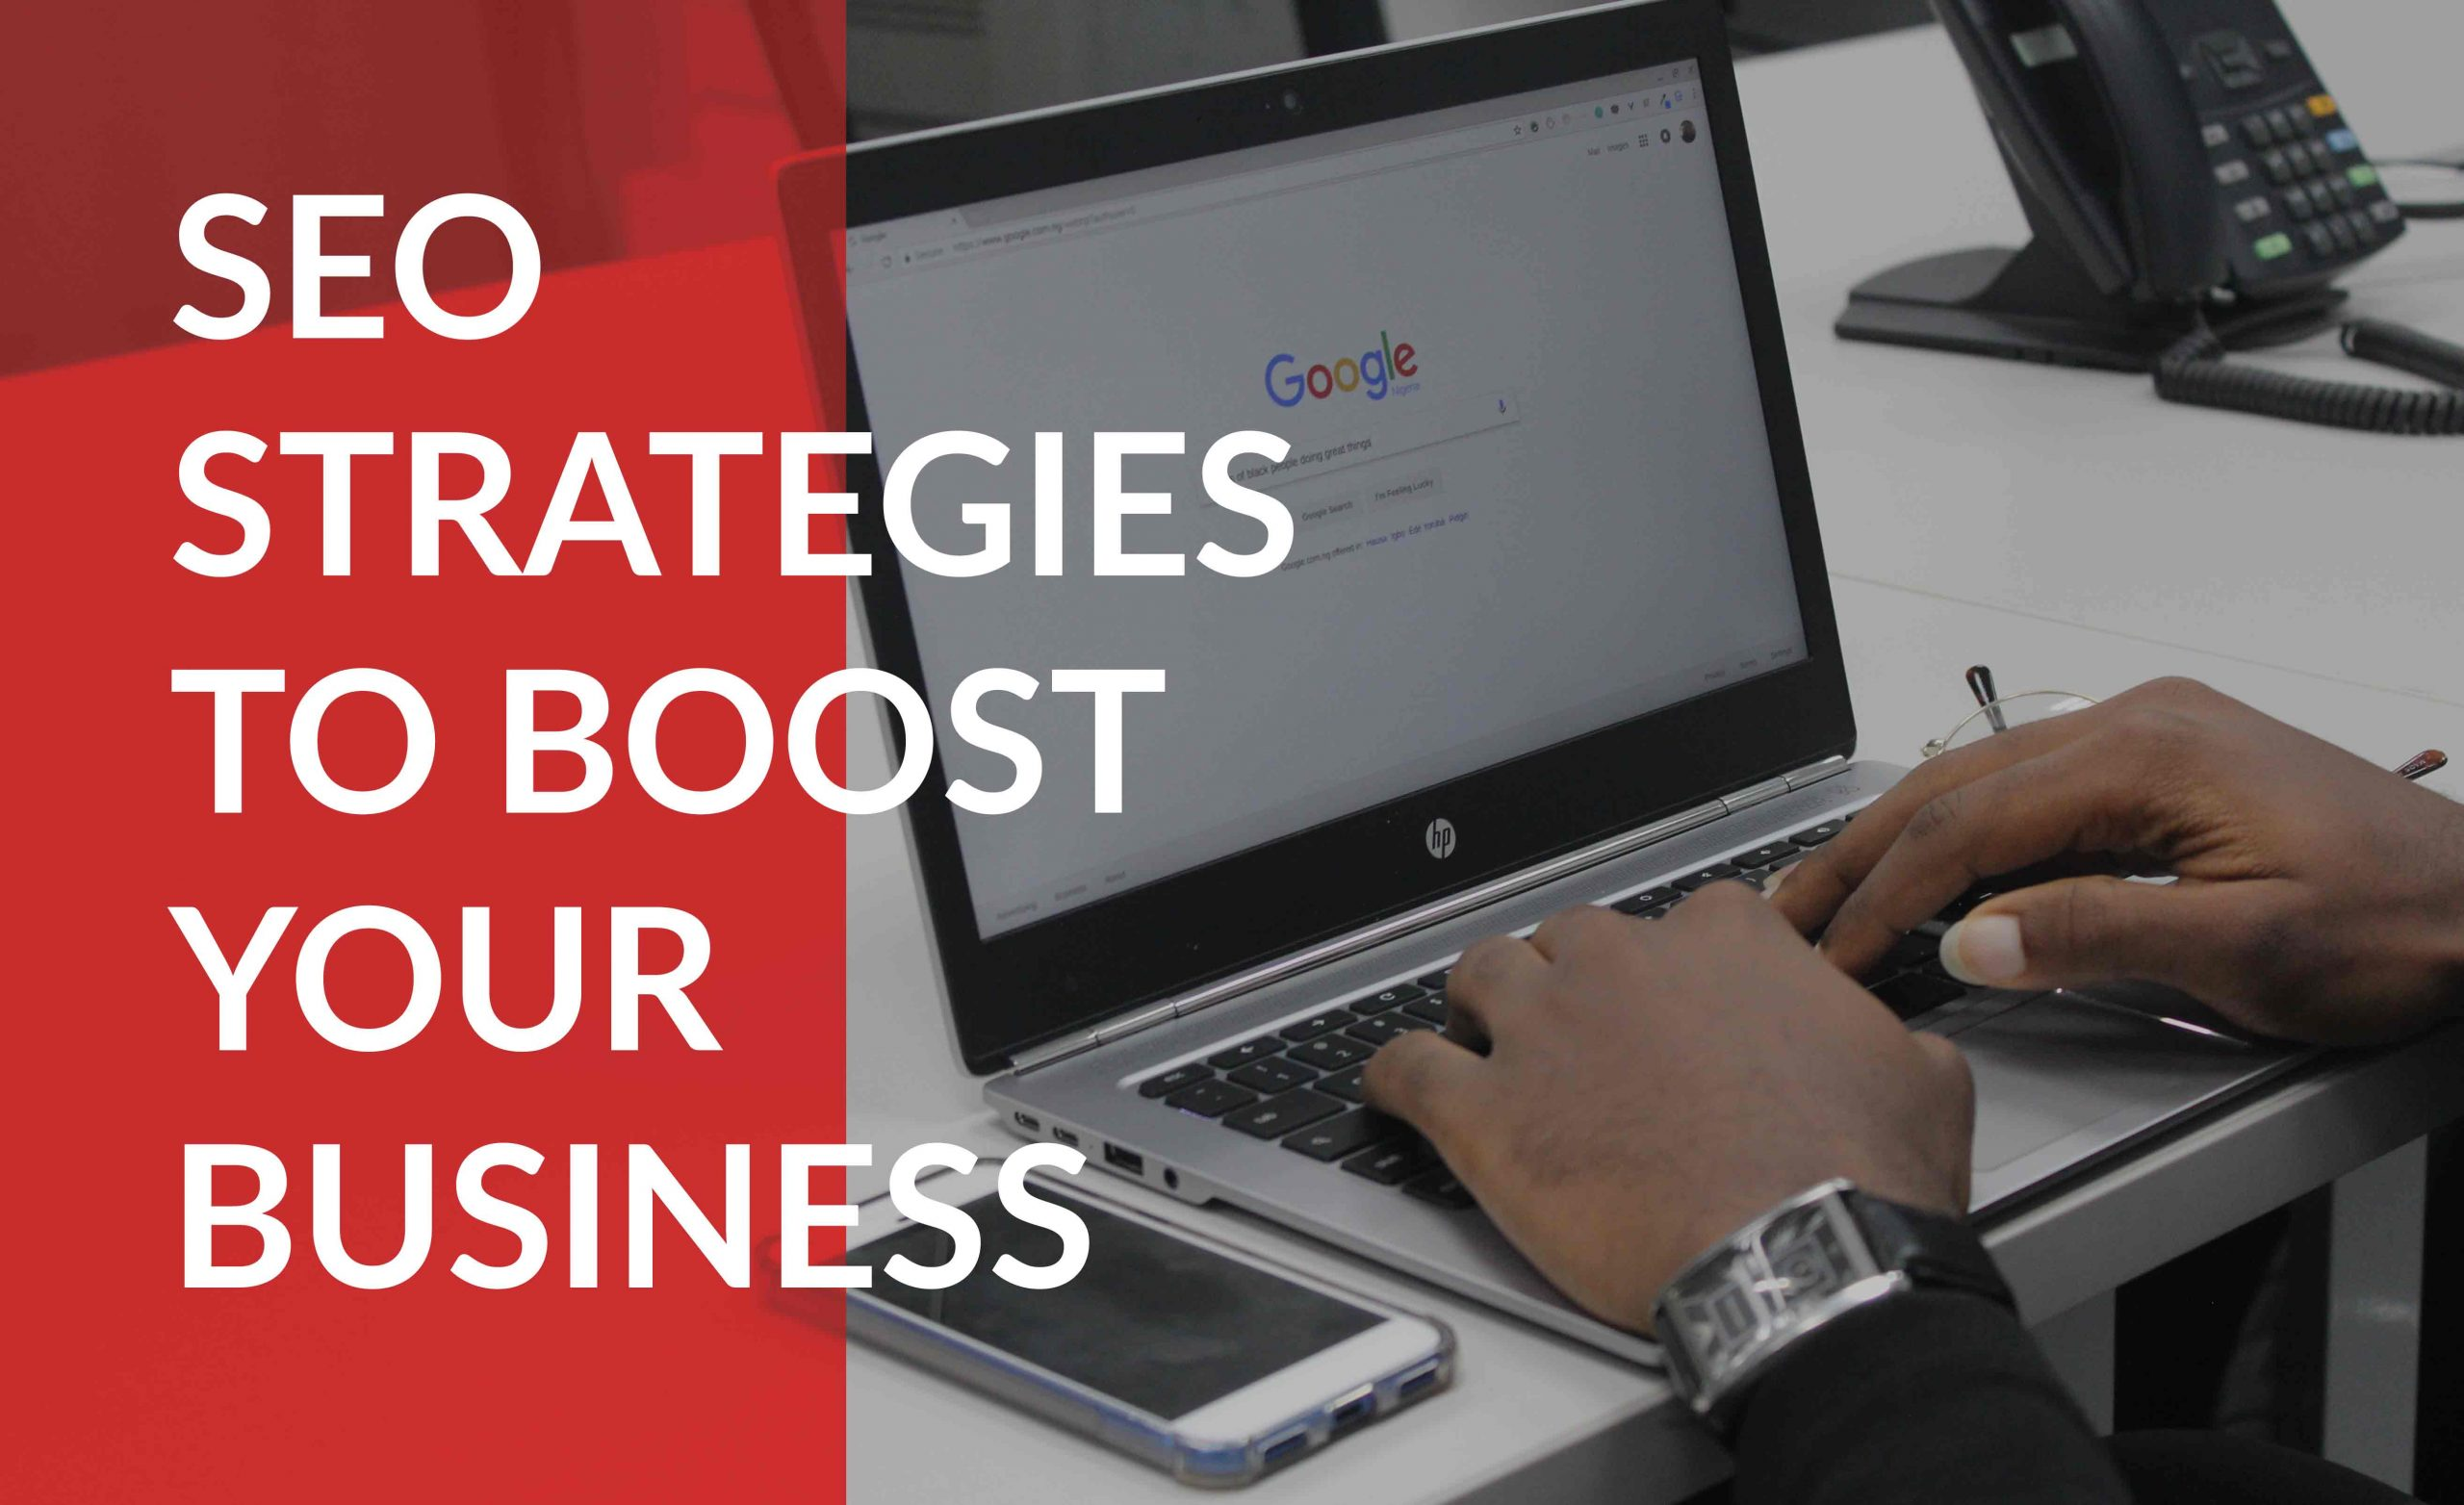 show your business some love with these seo strategies